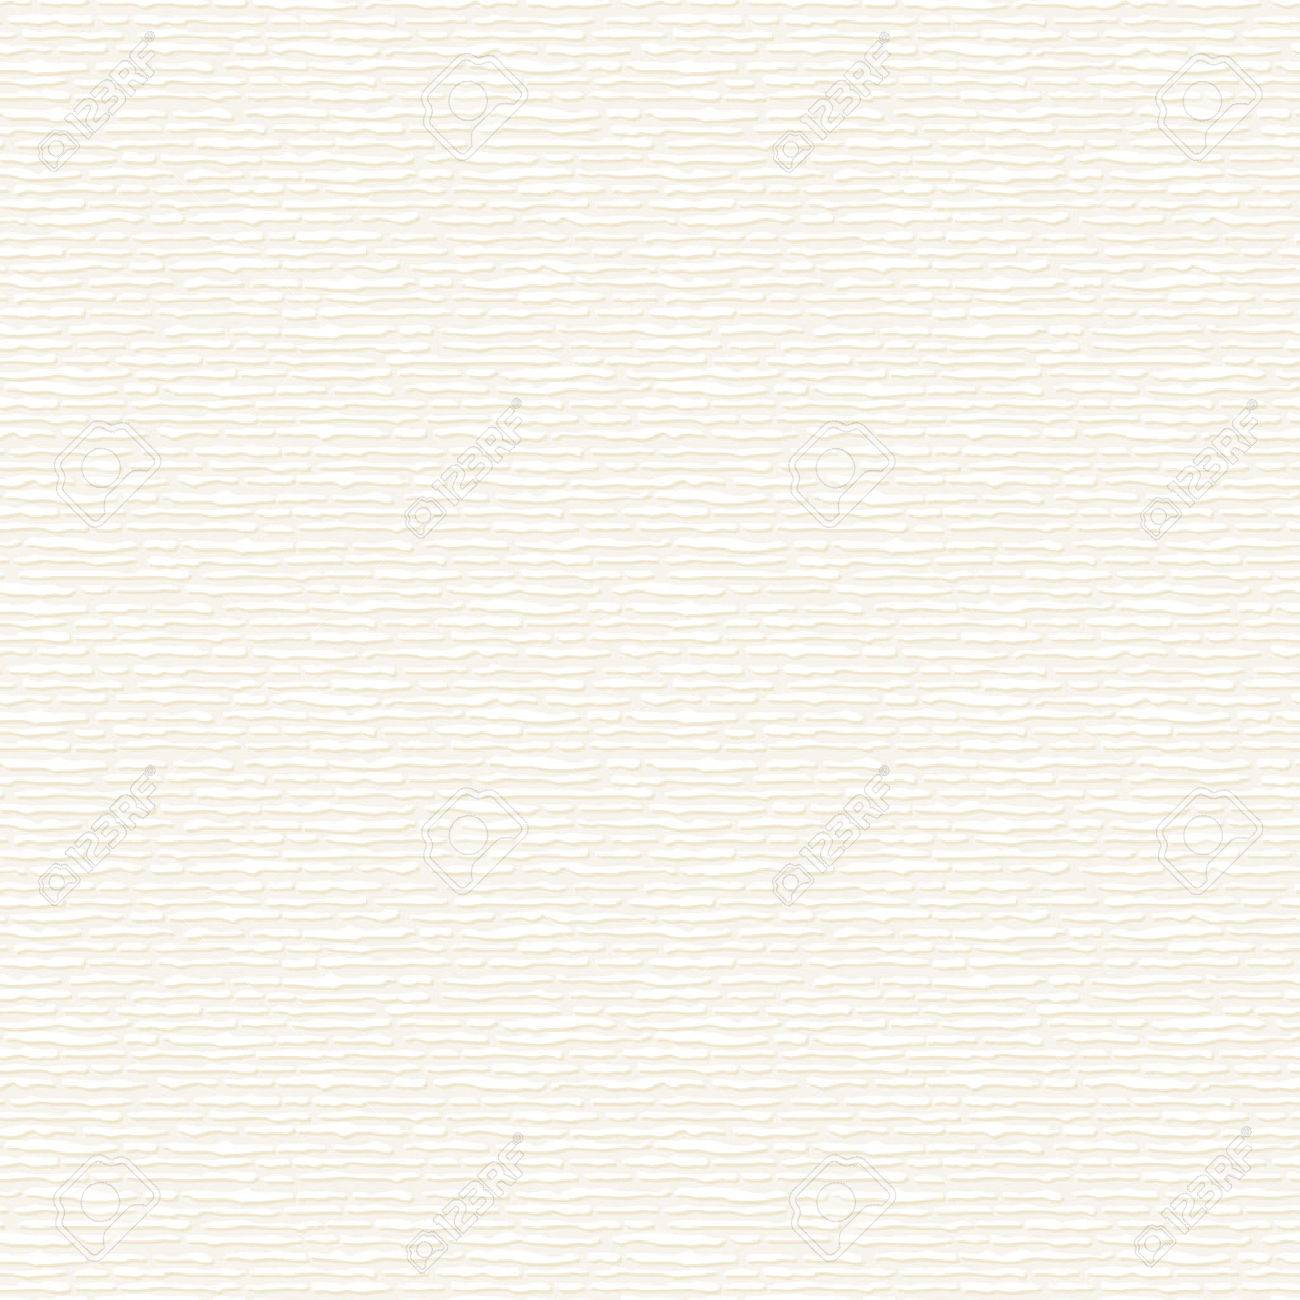 Vector Seamless White Paper Texture Royalty Free Cliparts Vectors